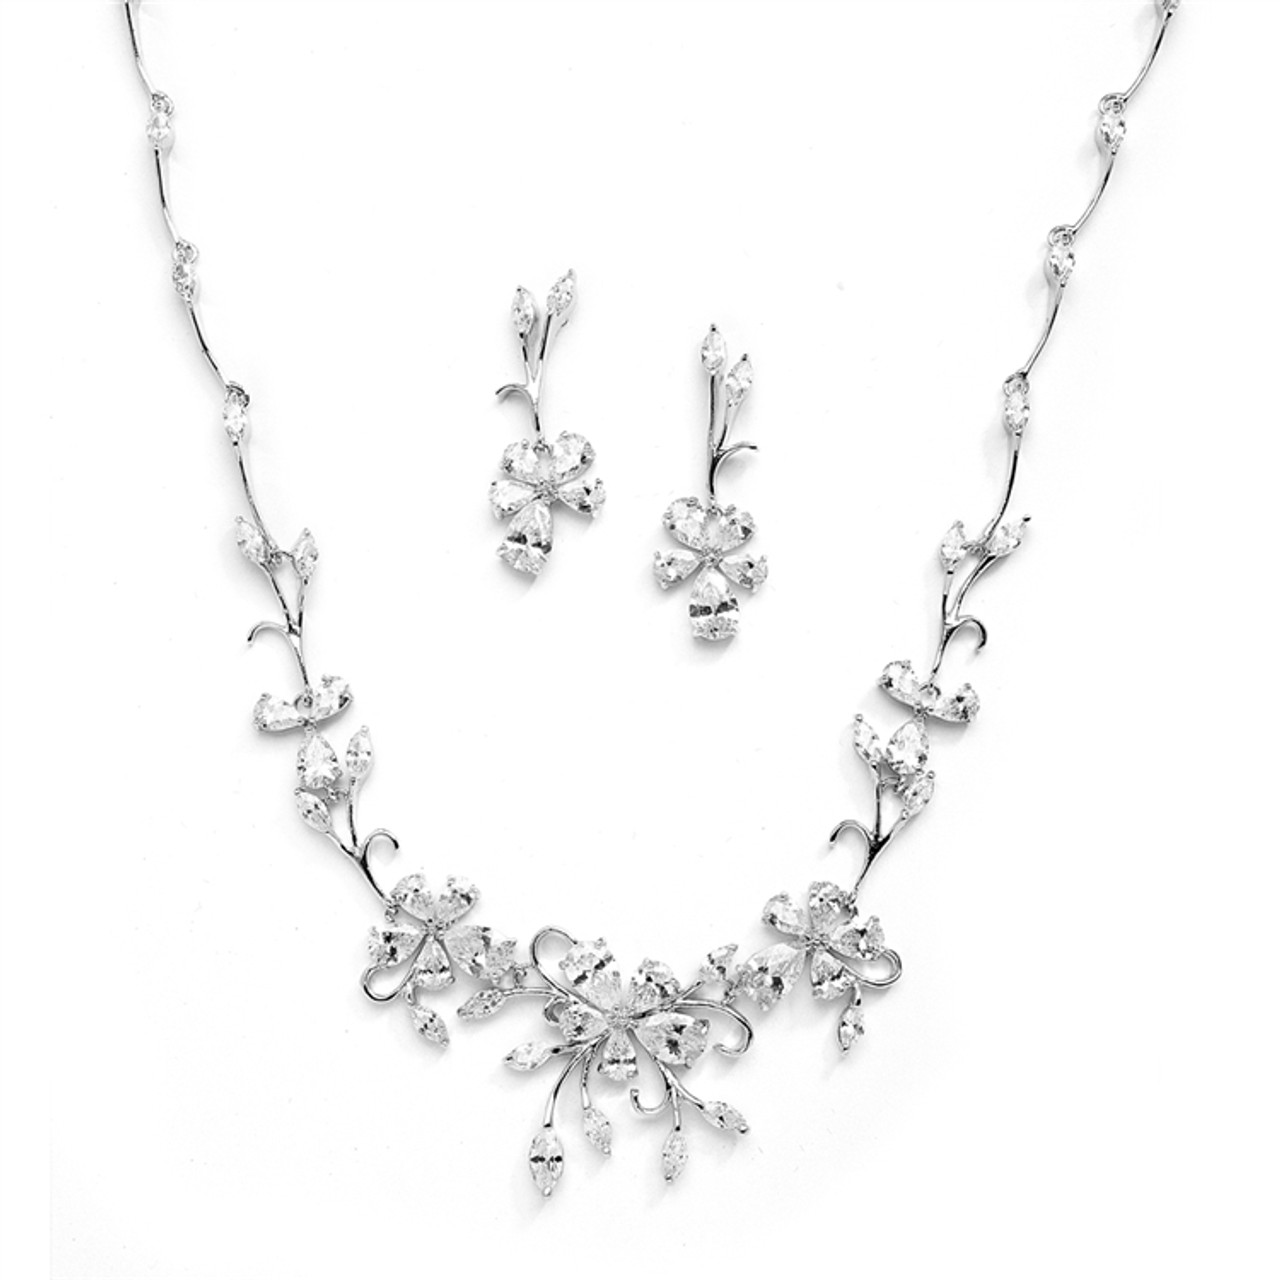 Mariell Bridals Elegant Vine CZ Necklace and Earrings Set 4233S-S